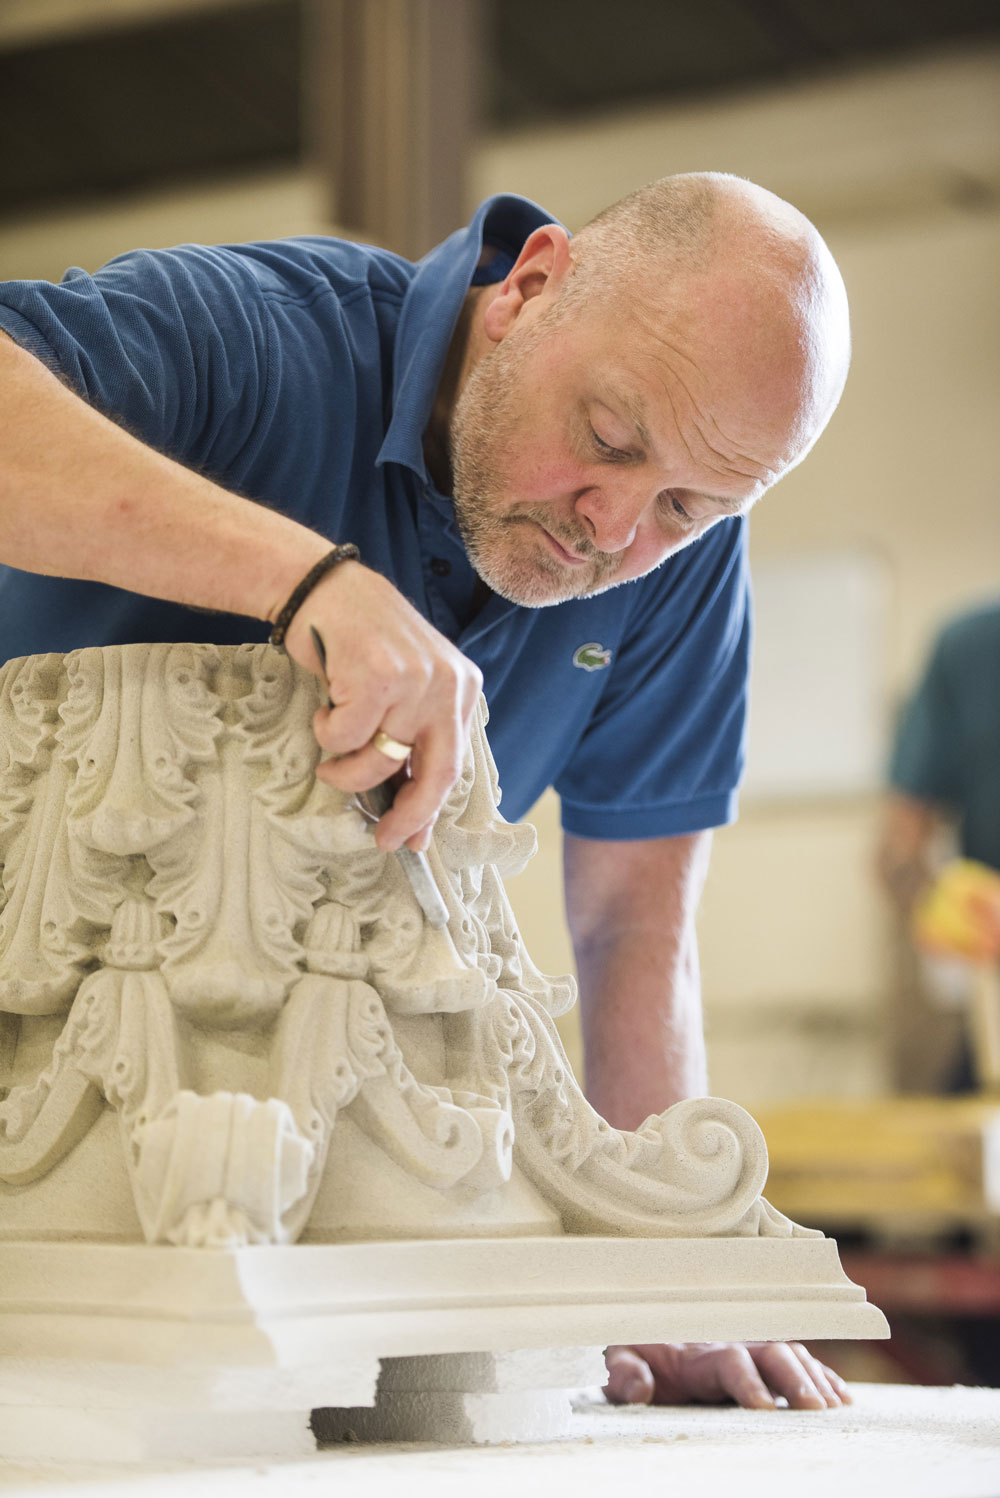 Northants Stonework Business Recognised as one of Britain's Greatest Brands